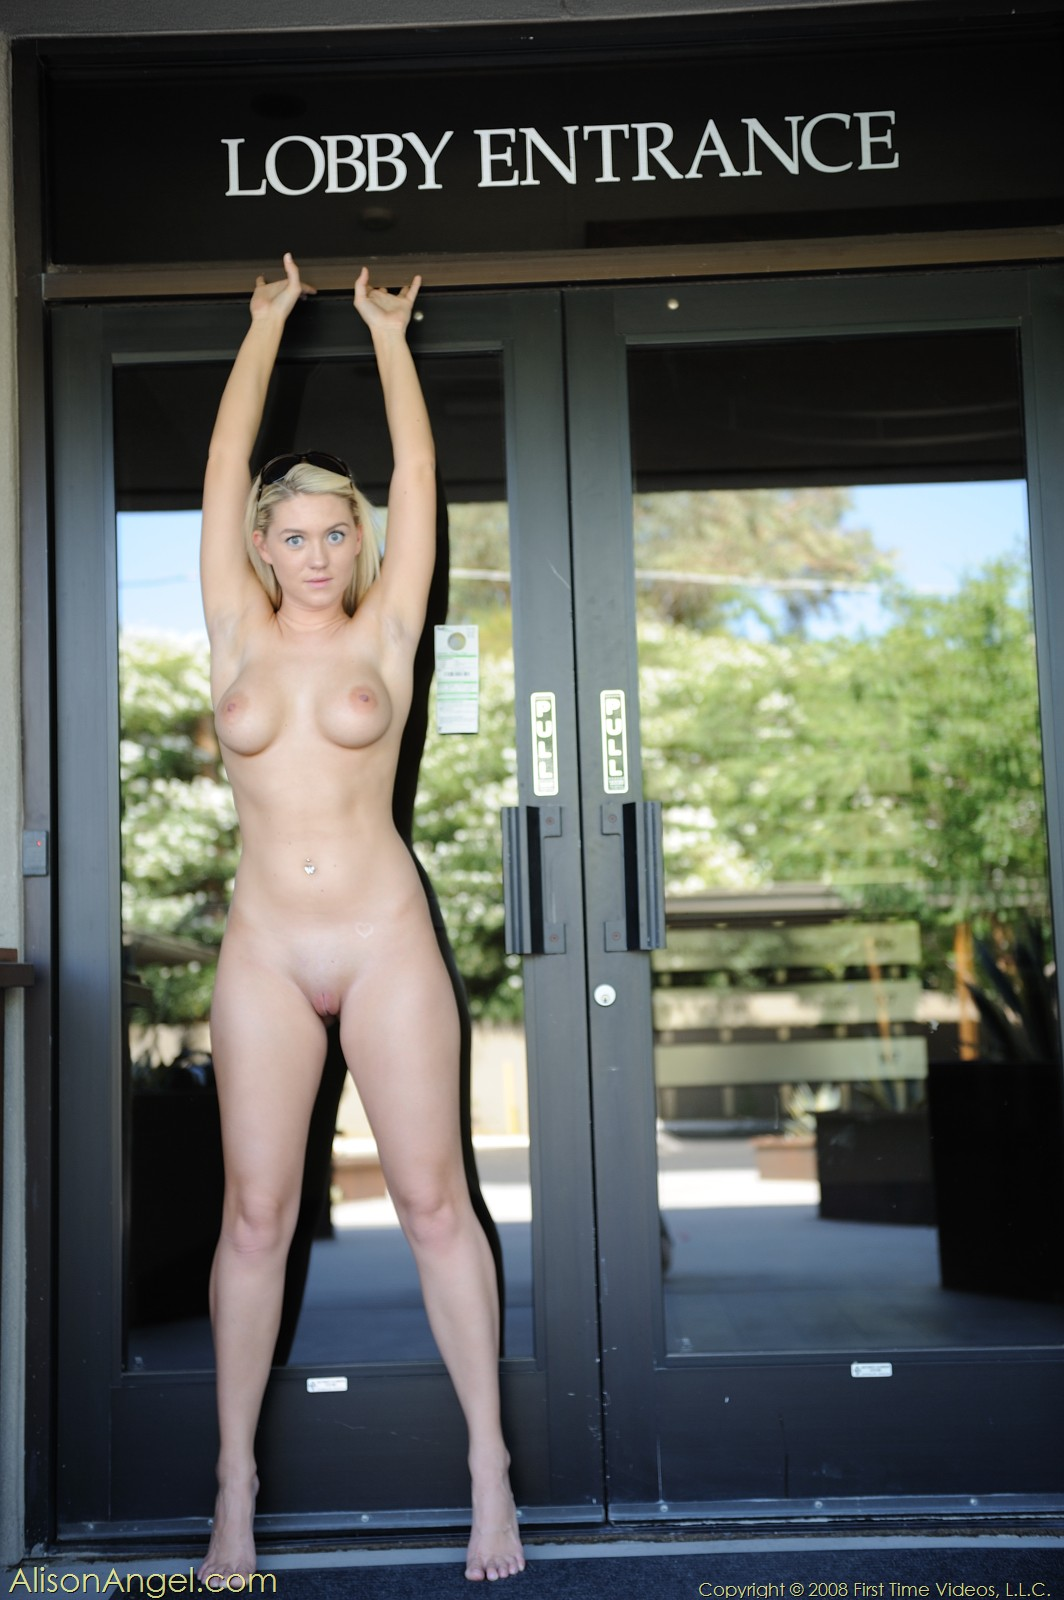 Pictures of Alison Angel getting naked outside